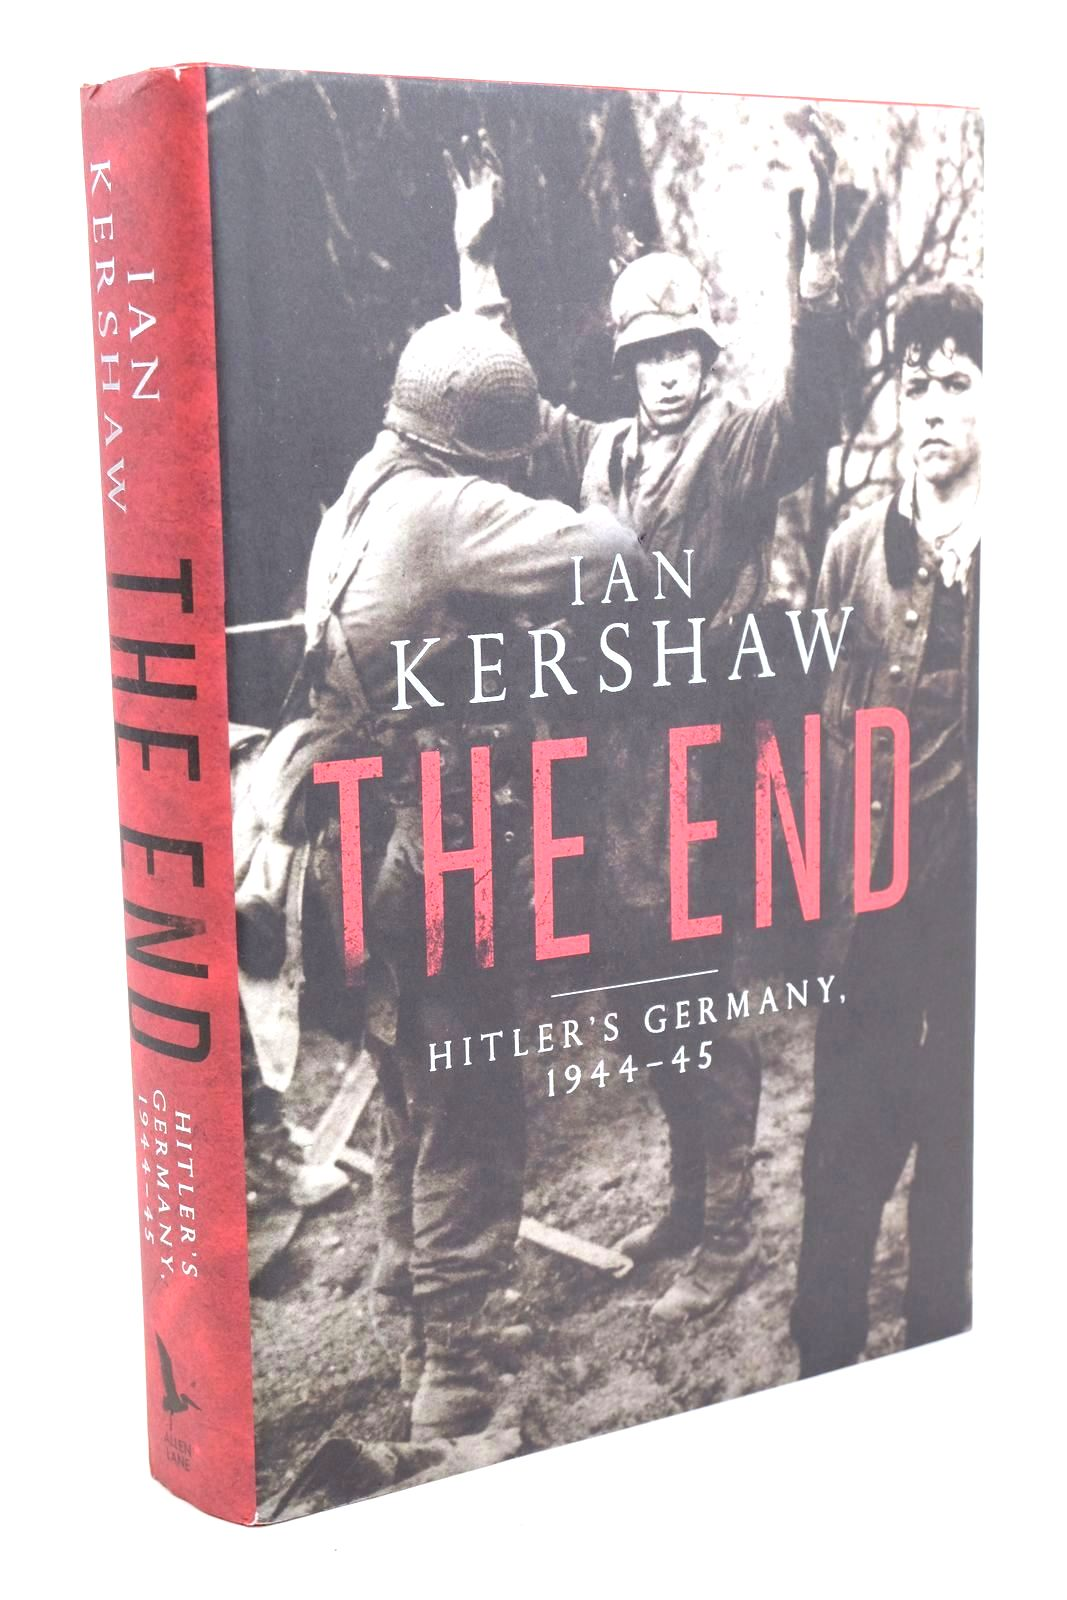 Photo of THE END HITLER'S GERMANY 1944-45- Stock Number: 1320161